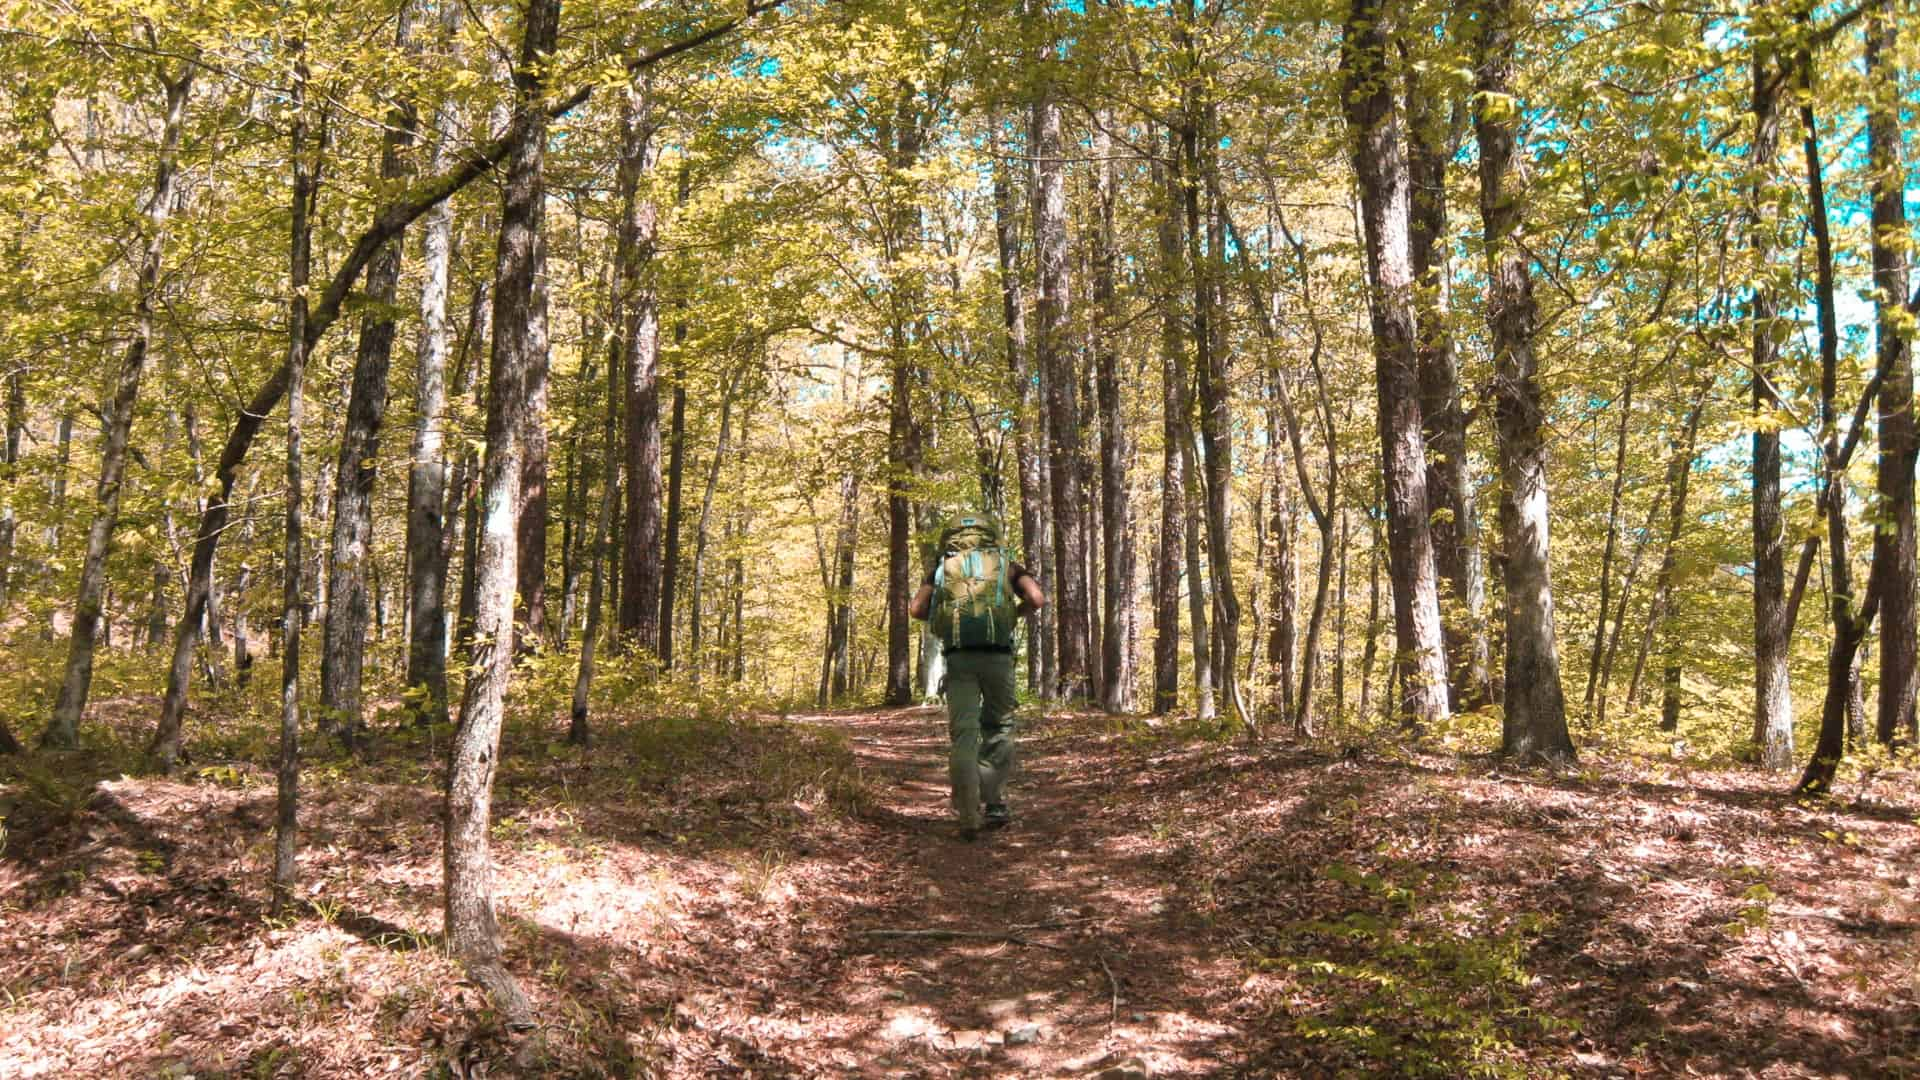 Backpacking Eagle Rock Loop in the Ouachita National Forest, Arkansas